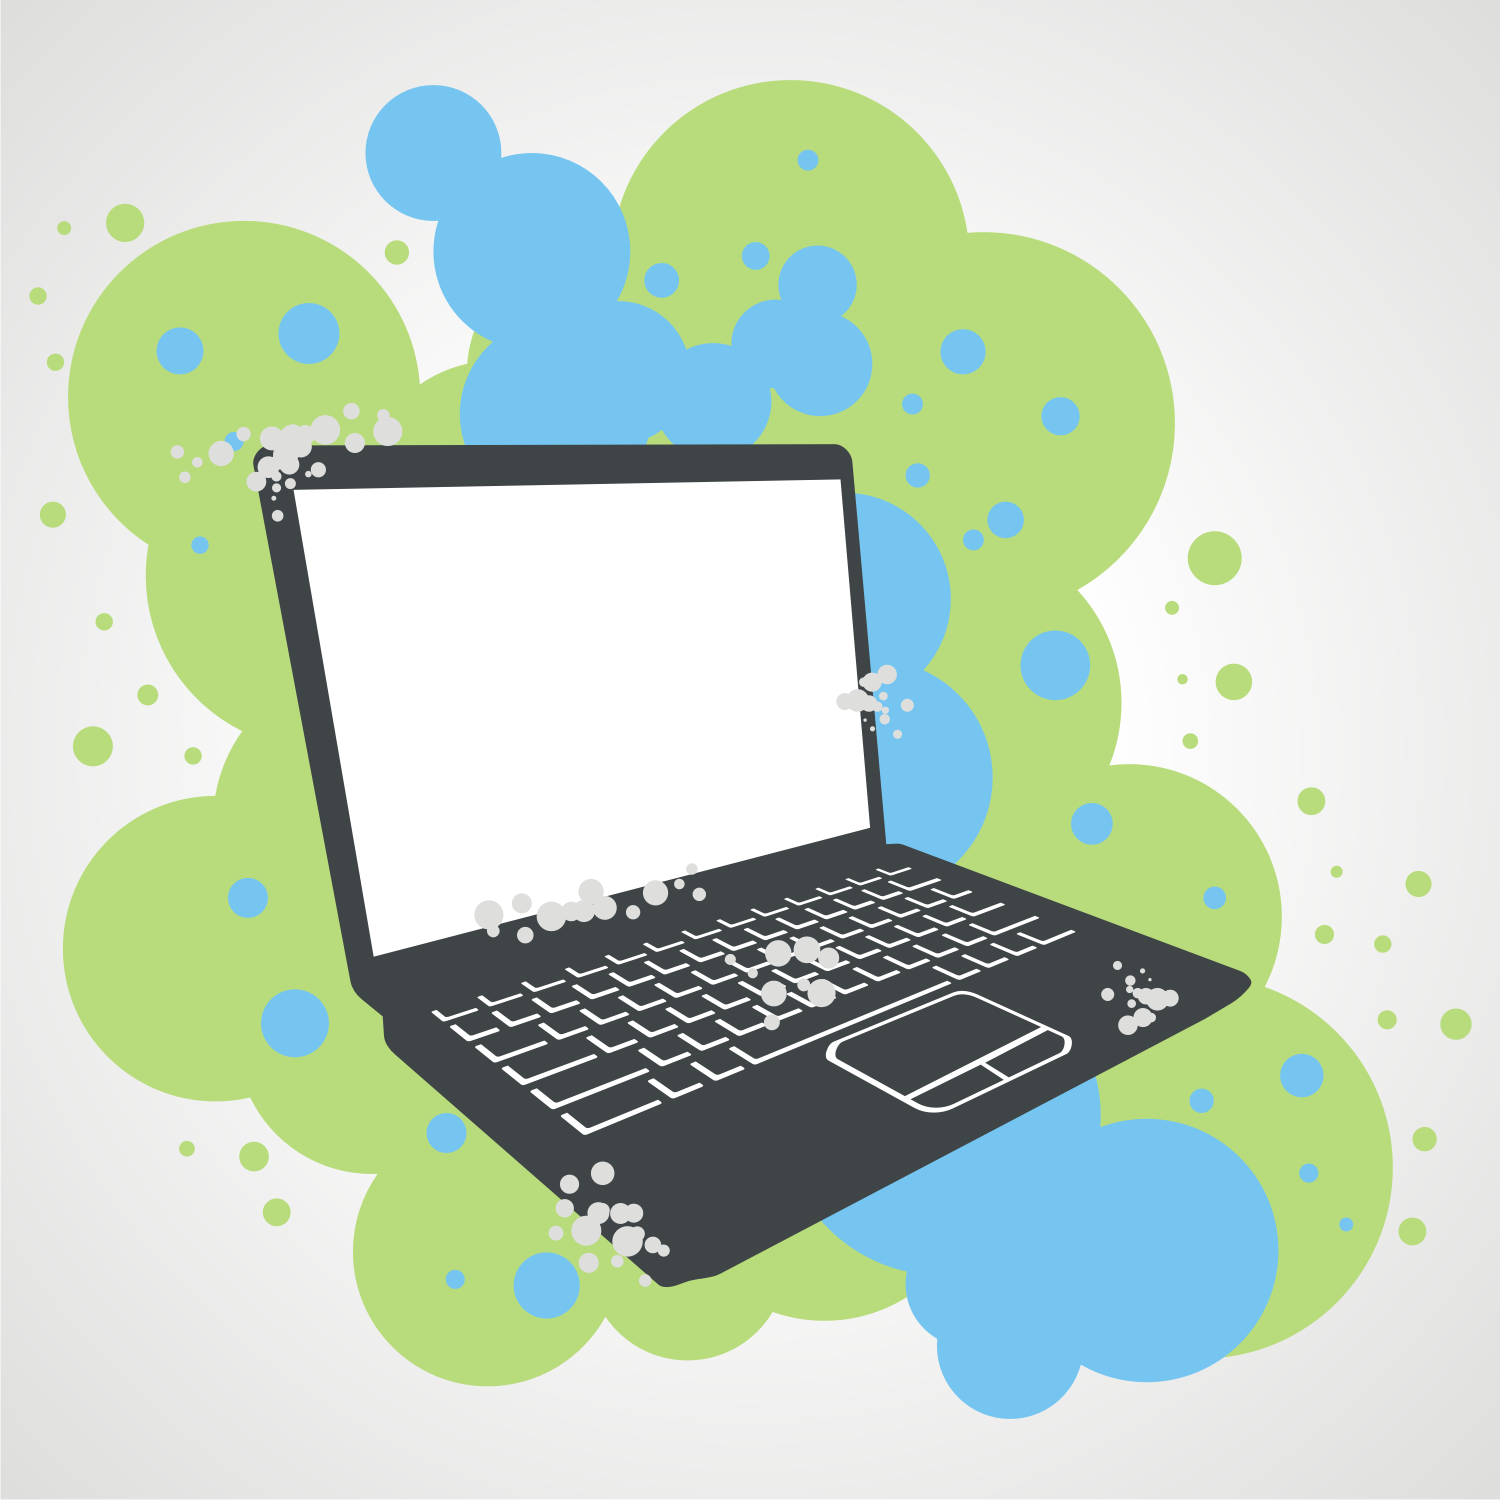 Grunge illustration of a laptop. Free vector image